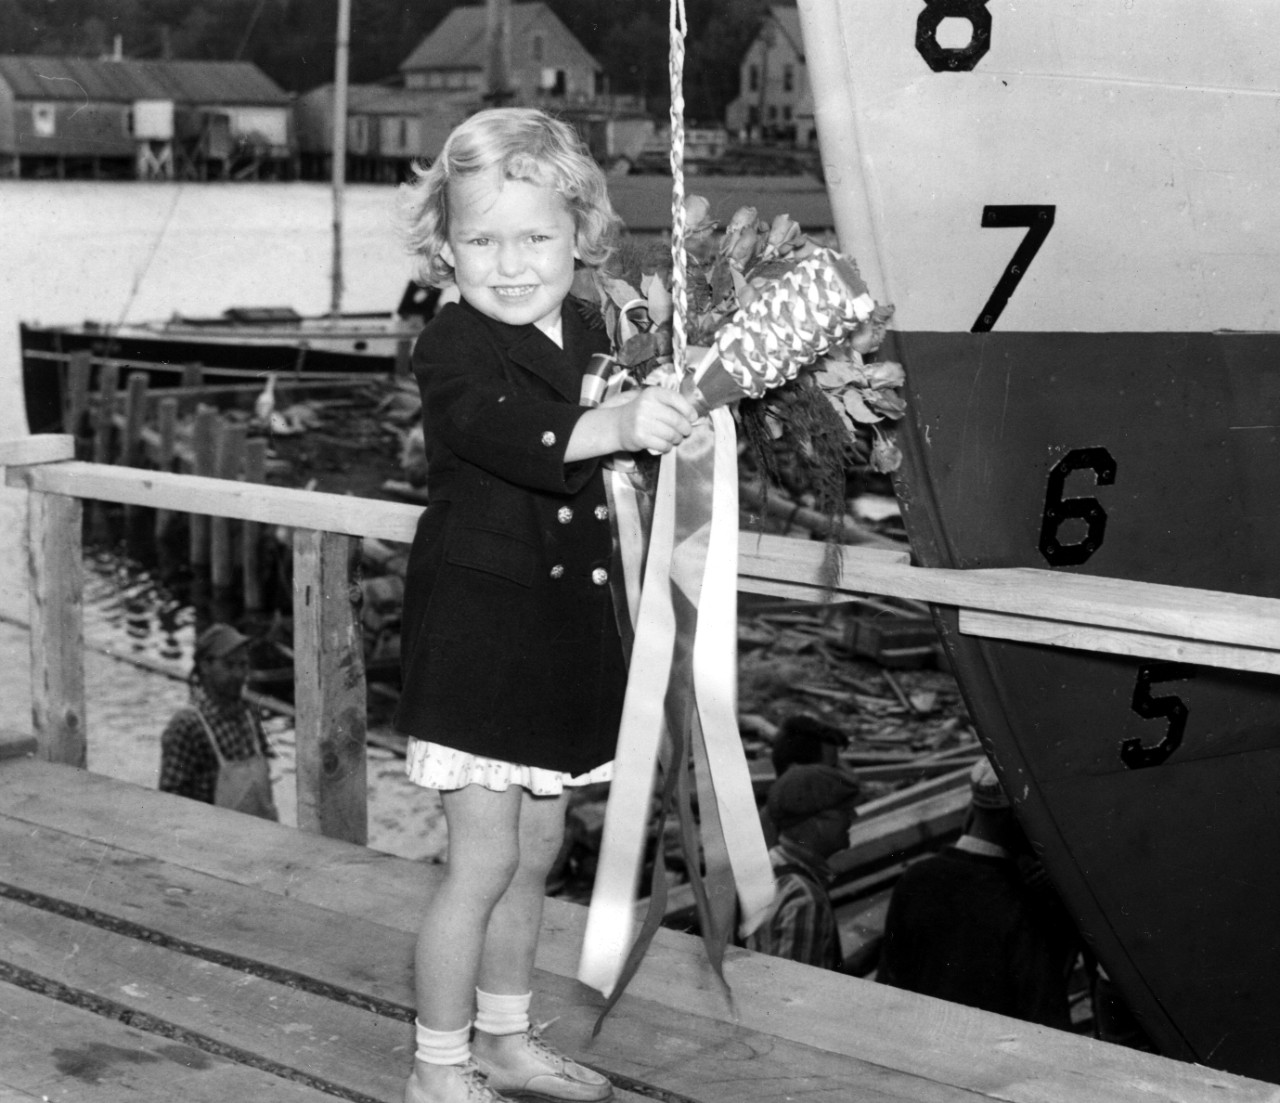 Little Joanne Witherell holds what appears to be an appropriately sized bottle of Great Western champagne as she prepares to christen Chachalaca – up to that time the largest vessel ever constructed by the Bristol Yacht Building Co. -- on 11 June 1941. (Chachalaca (AMc-41) Ships Name and Sponsor Files, History and Archives Division, Naval History and Heritage Command)